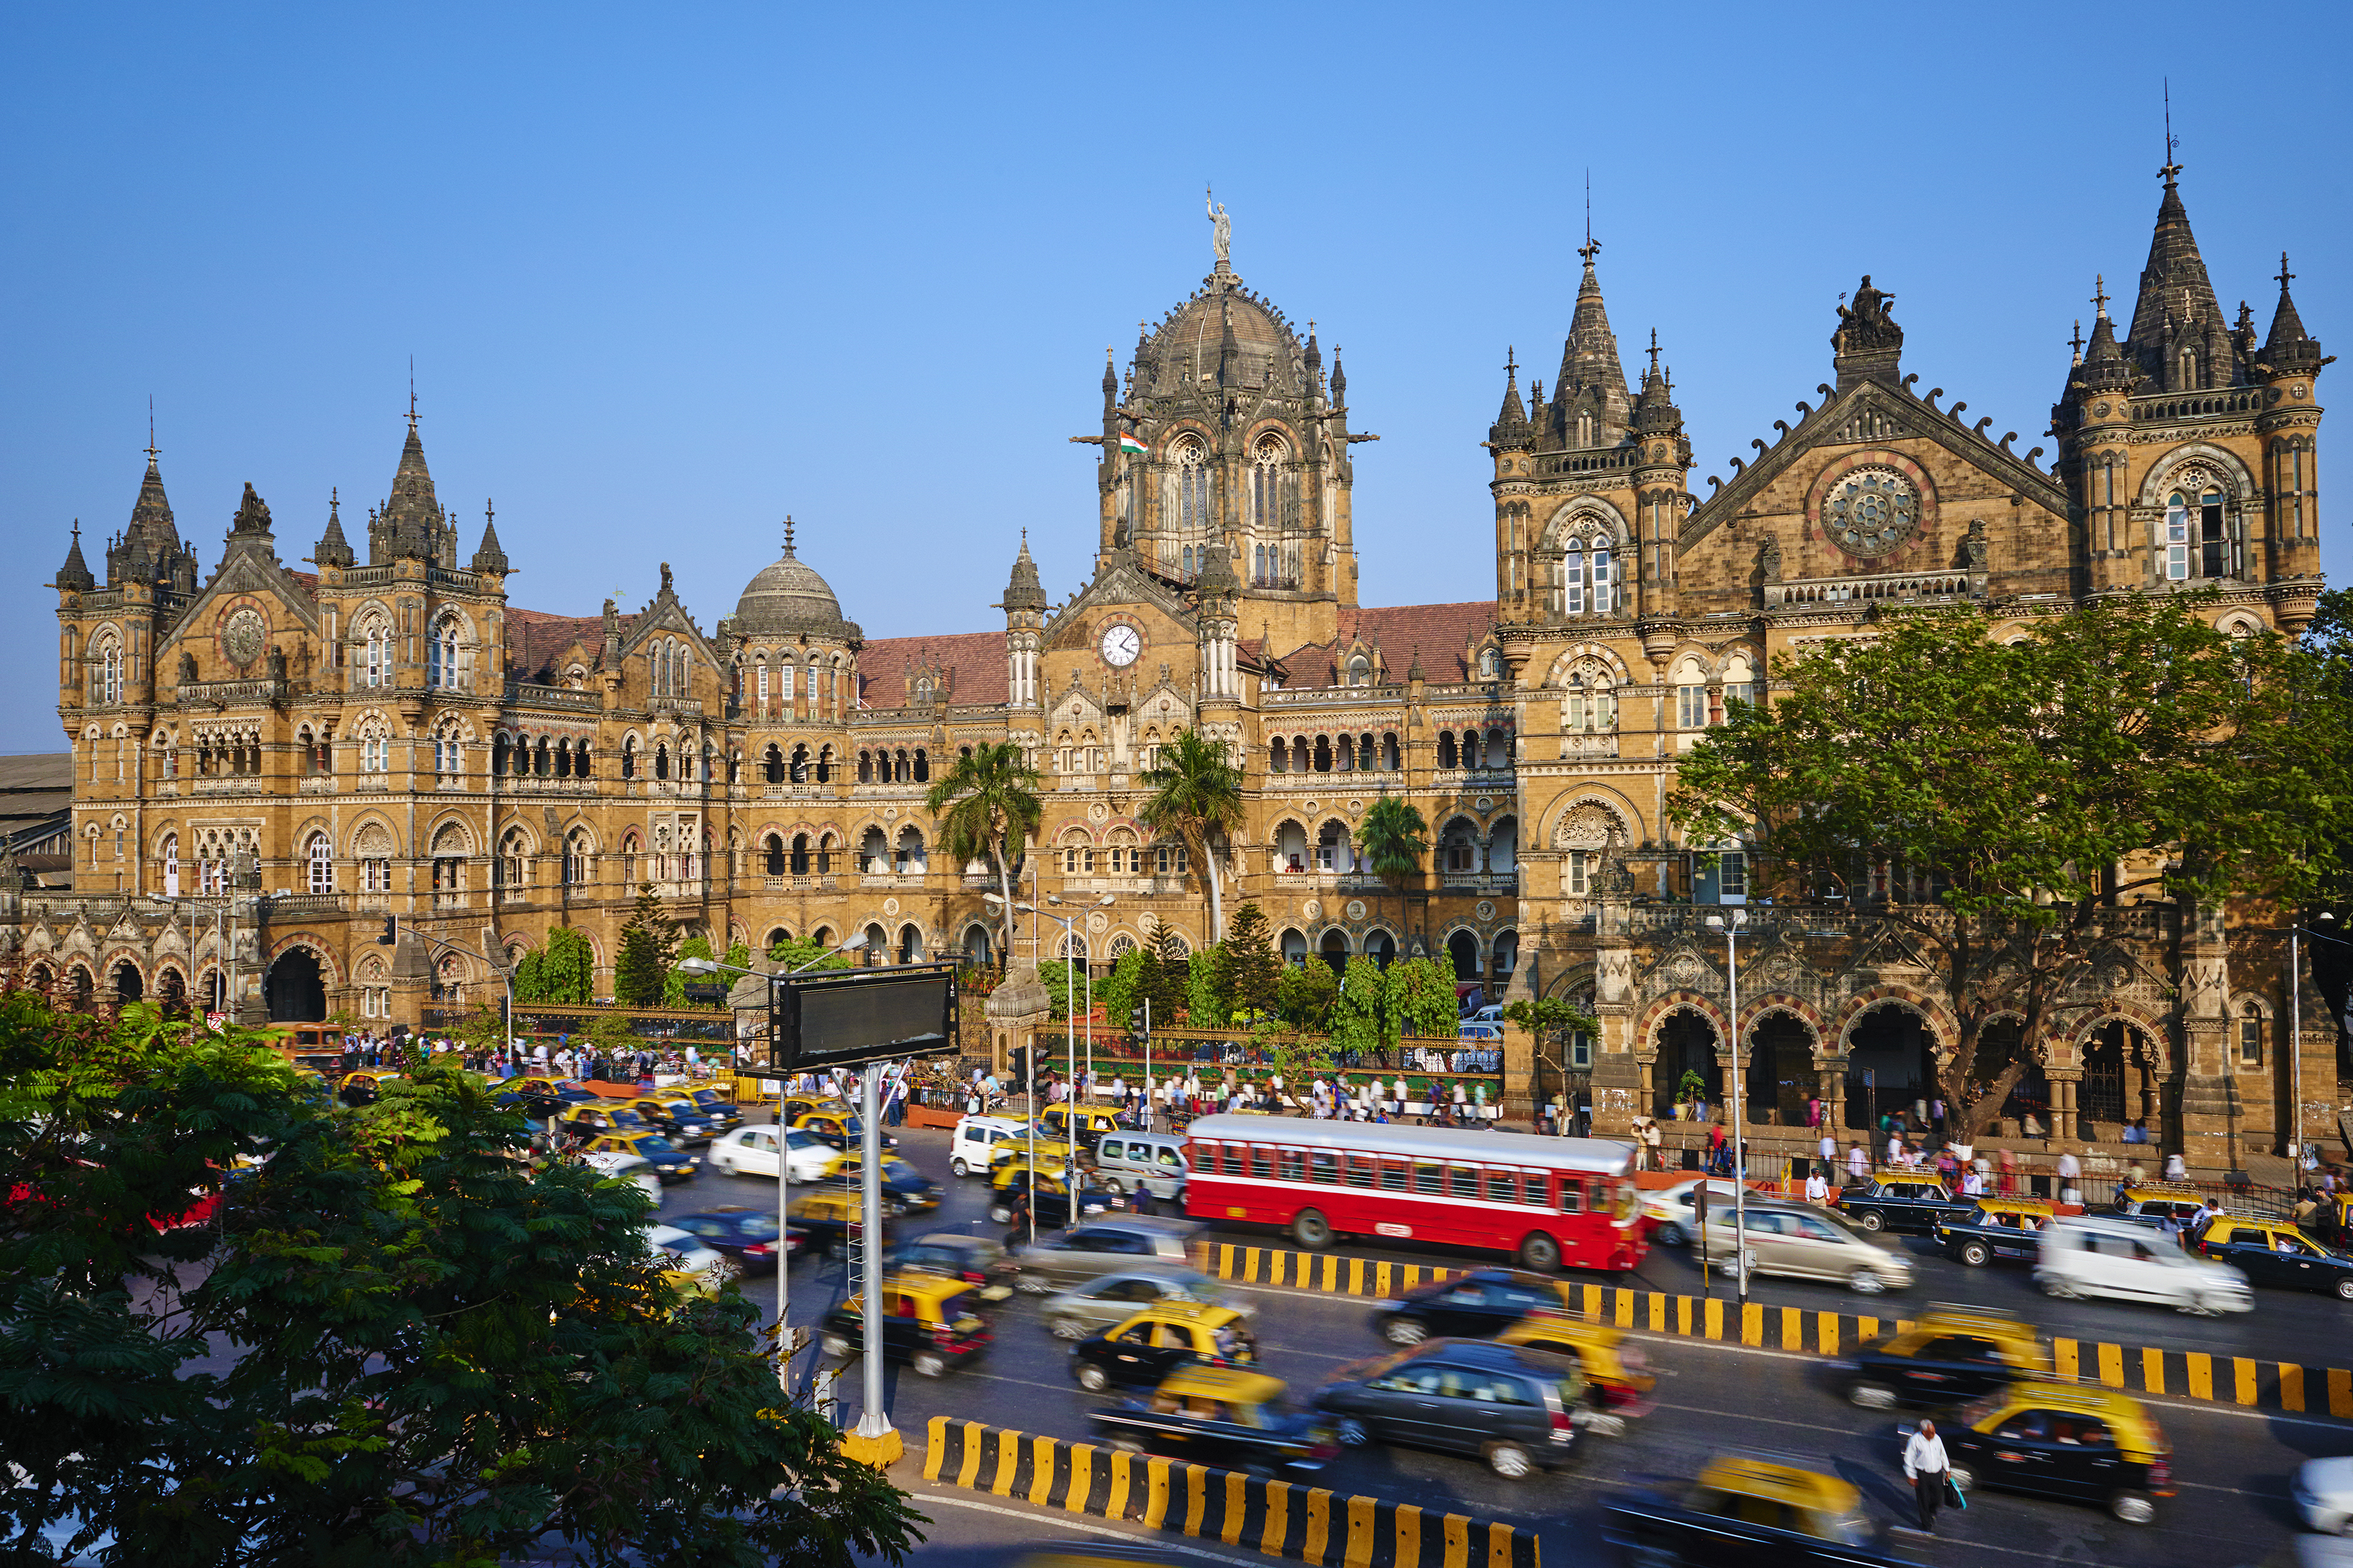 Slide 15 of 29: India, Maharashtra, Mumbai (Bombay), Victoria Terminus railways station or Chhatrapati Shivaji